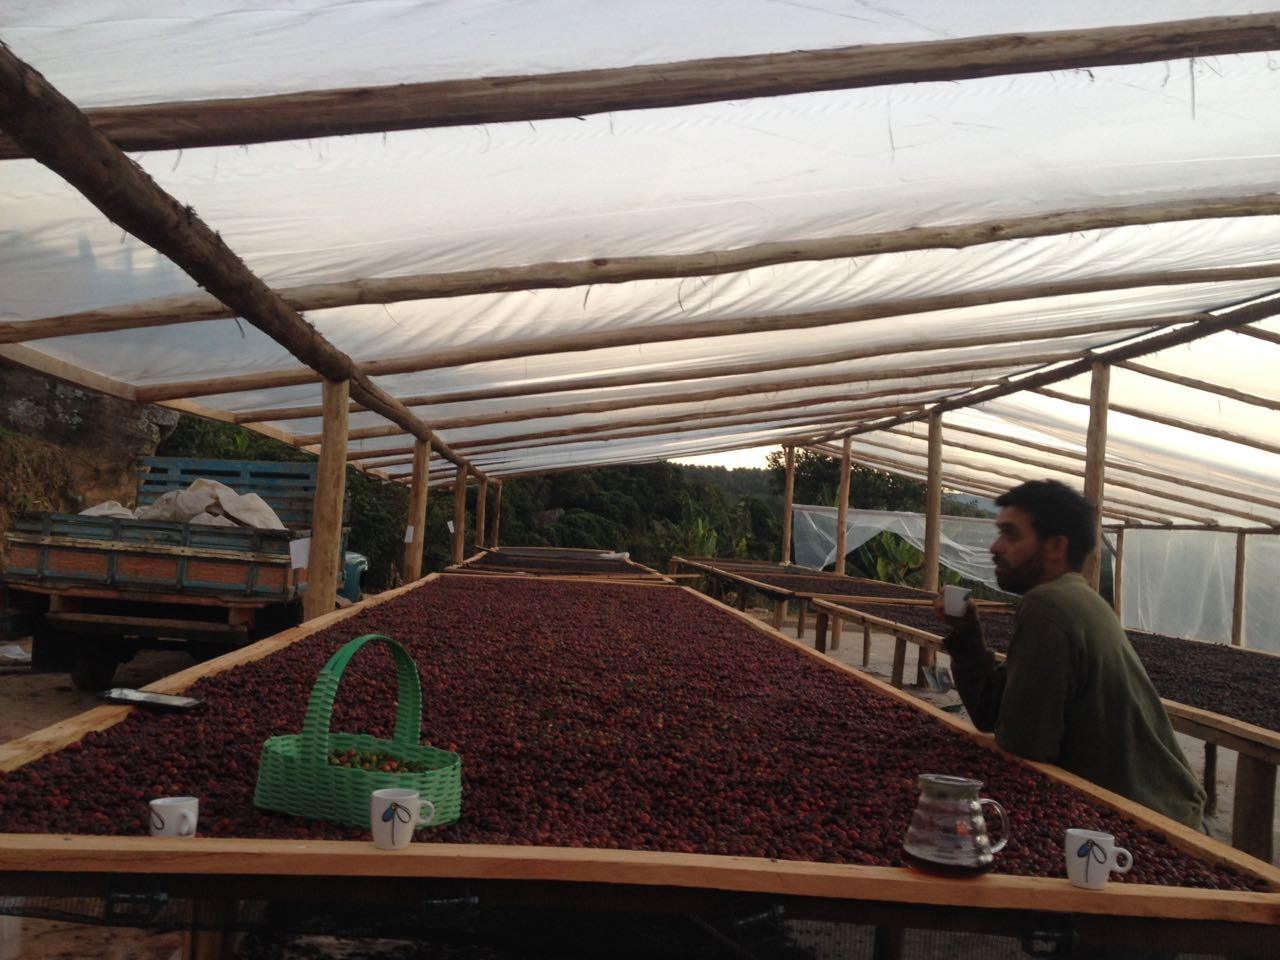 Drying Coffee On Raised Tables